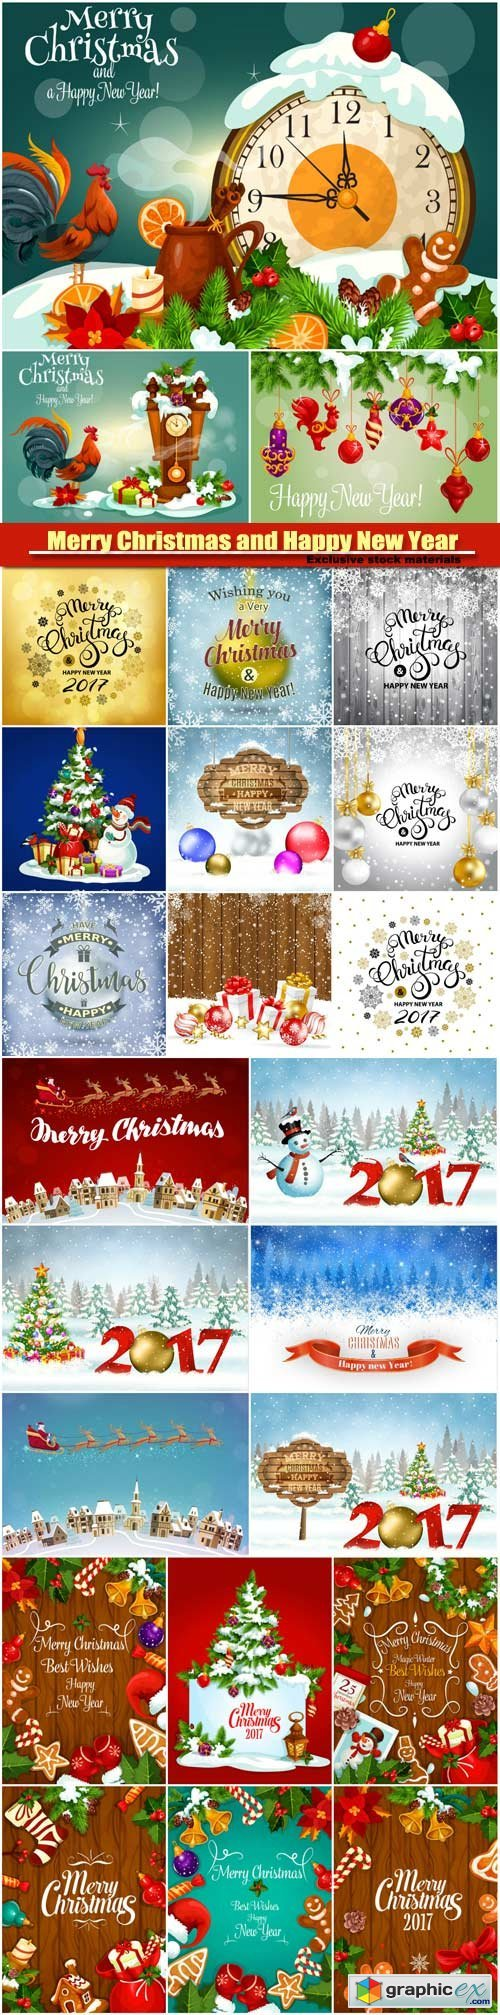 Merry Christmas and Happy New Year vector background, santa riding reindeer sleigh, gifts, christmas wreath, holly leaves